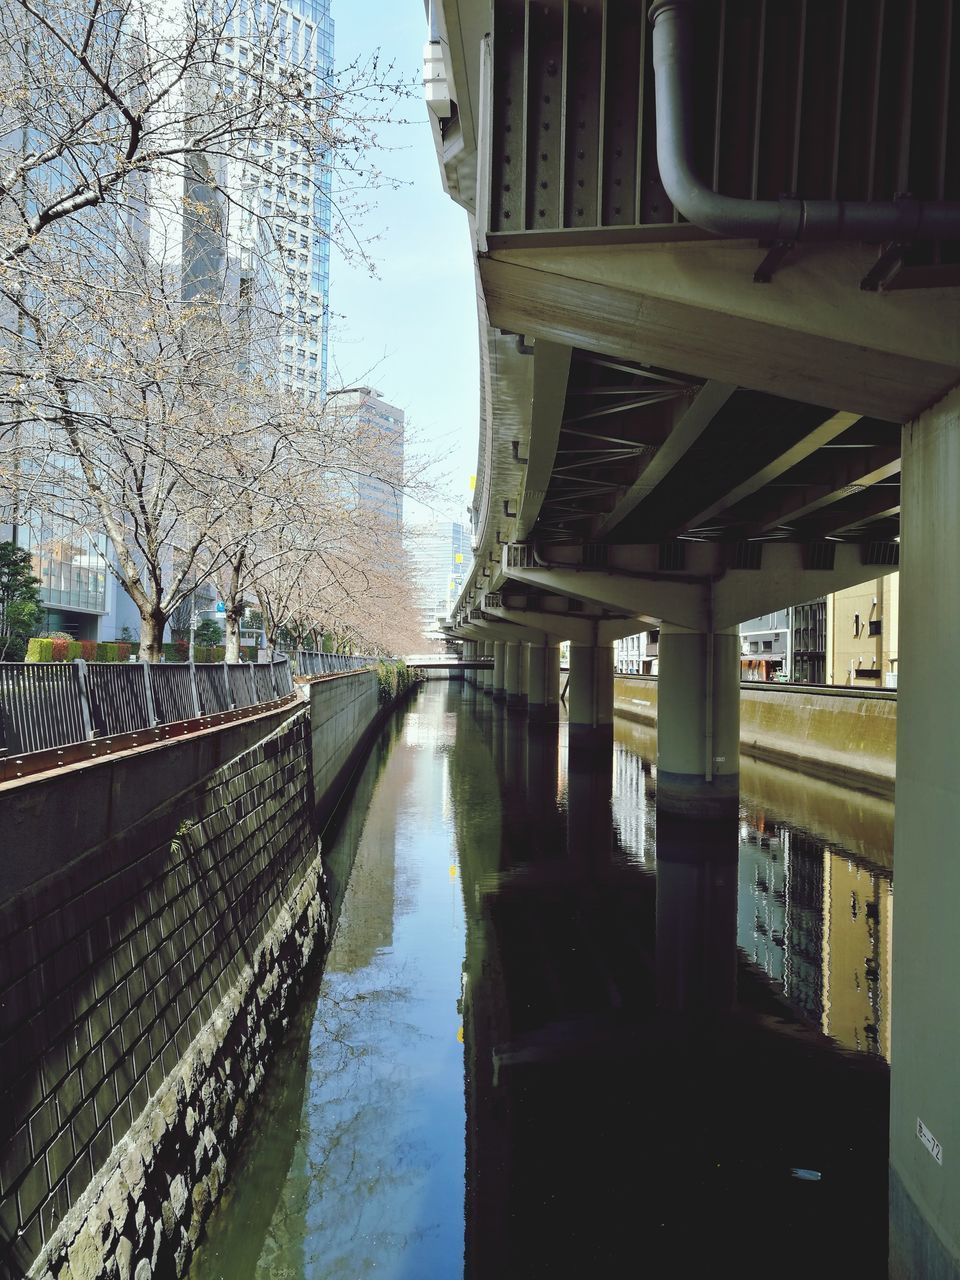 water, architecture, built structure, building exterior, reflection, bridge - man made structure, canal, connection, day, no people, outdoors, transportation, bridge, bare tree, tree, footbridge, nature, sky, city